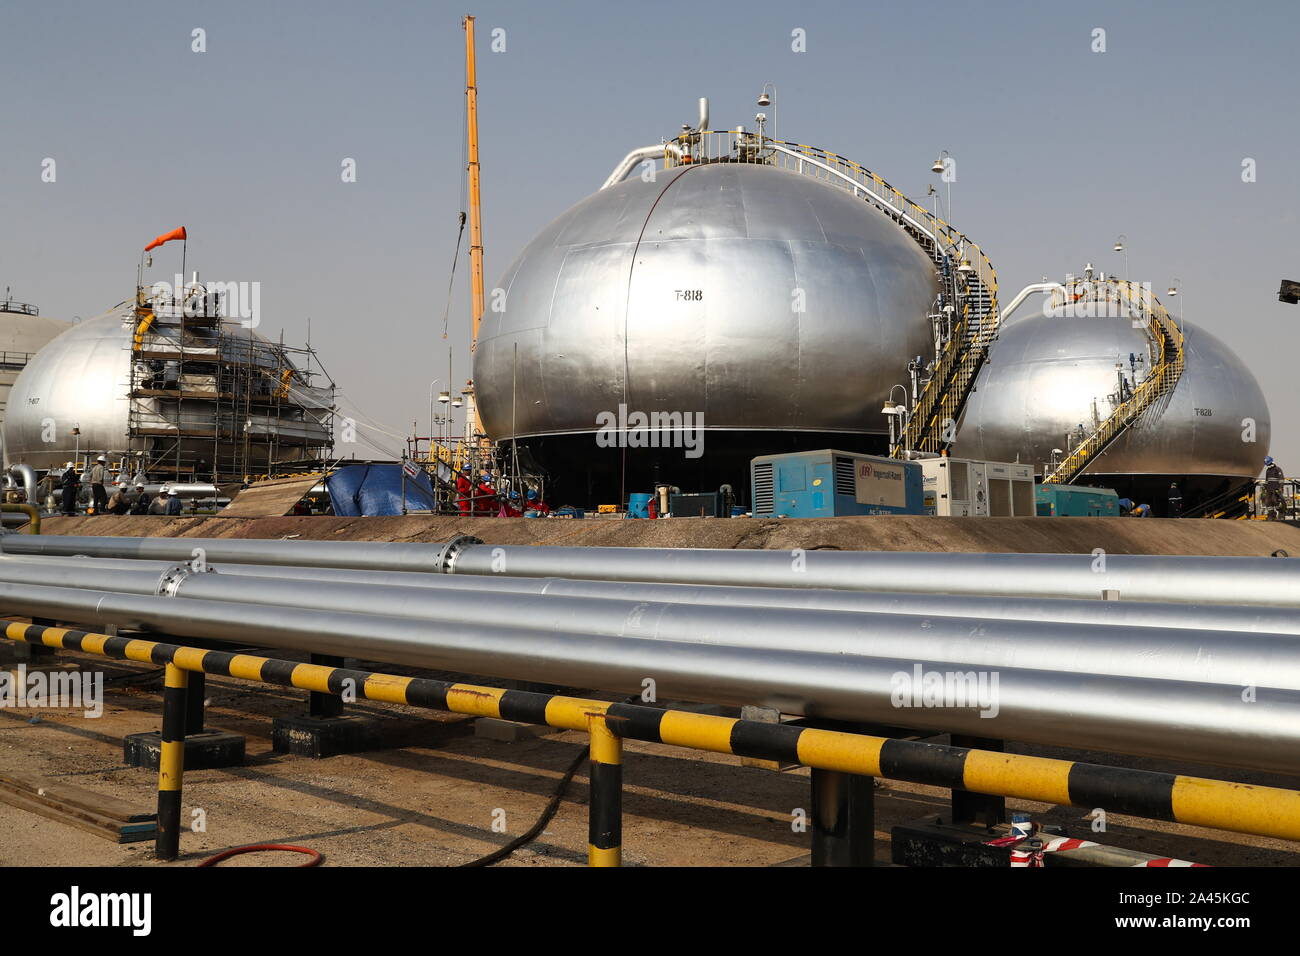 EASTERN PROVINCE, SAUDI ARABIA - OCTOBER 12, 2019: Damaged objects at an oil processing facility of Saudi Aramco, a Saudi Arabian state-owned oil and gas company, at the Abqaiq oil field. On 14 September 2019, two of the major Saudi oil facilities, Abqaiq and Khurais, suffered massive attacks of explosive-laden drones and cruise missiles; the Houthi movement, also known as Ansar Allah, claimed responsibility for the attacks. Stanislav Krasilnikov/TASS Stock Photo